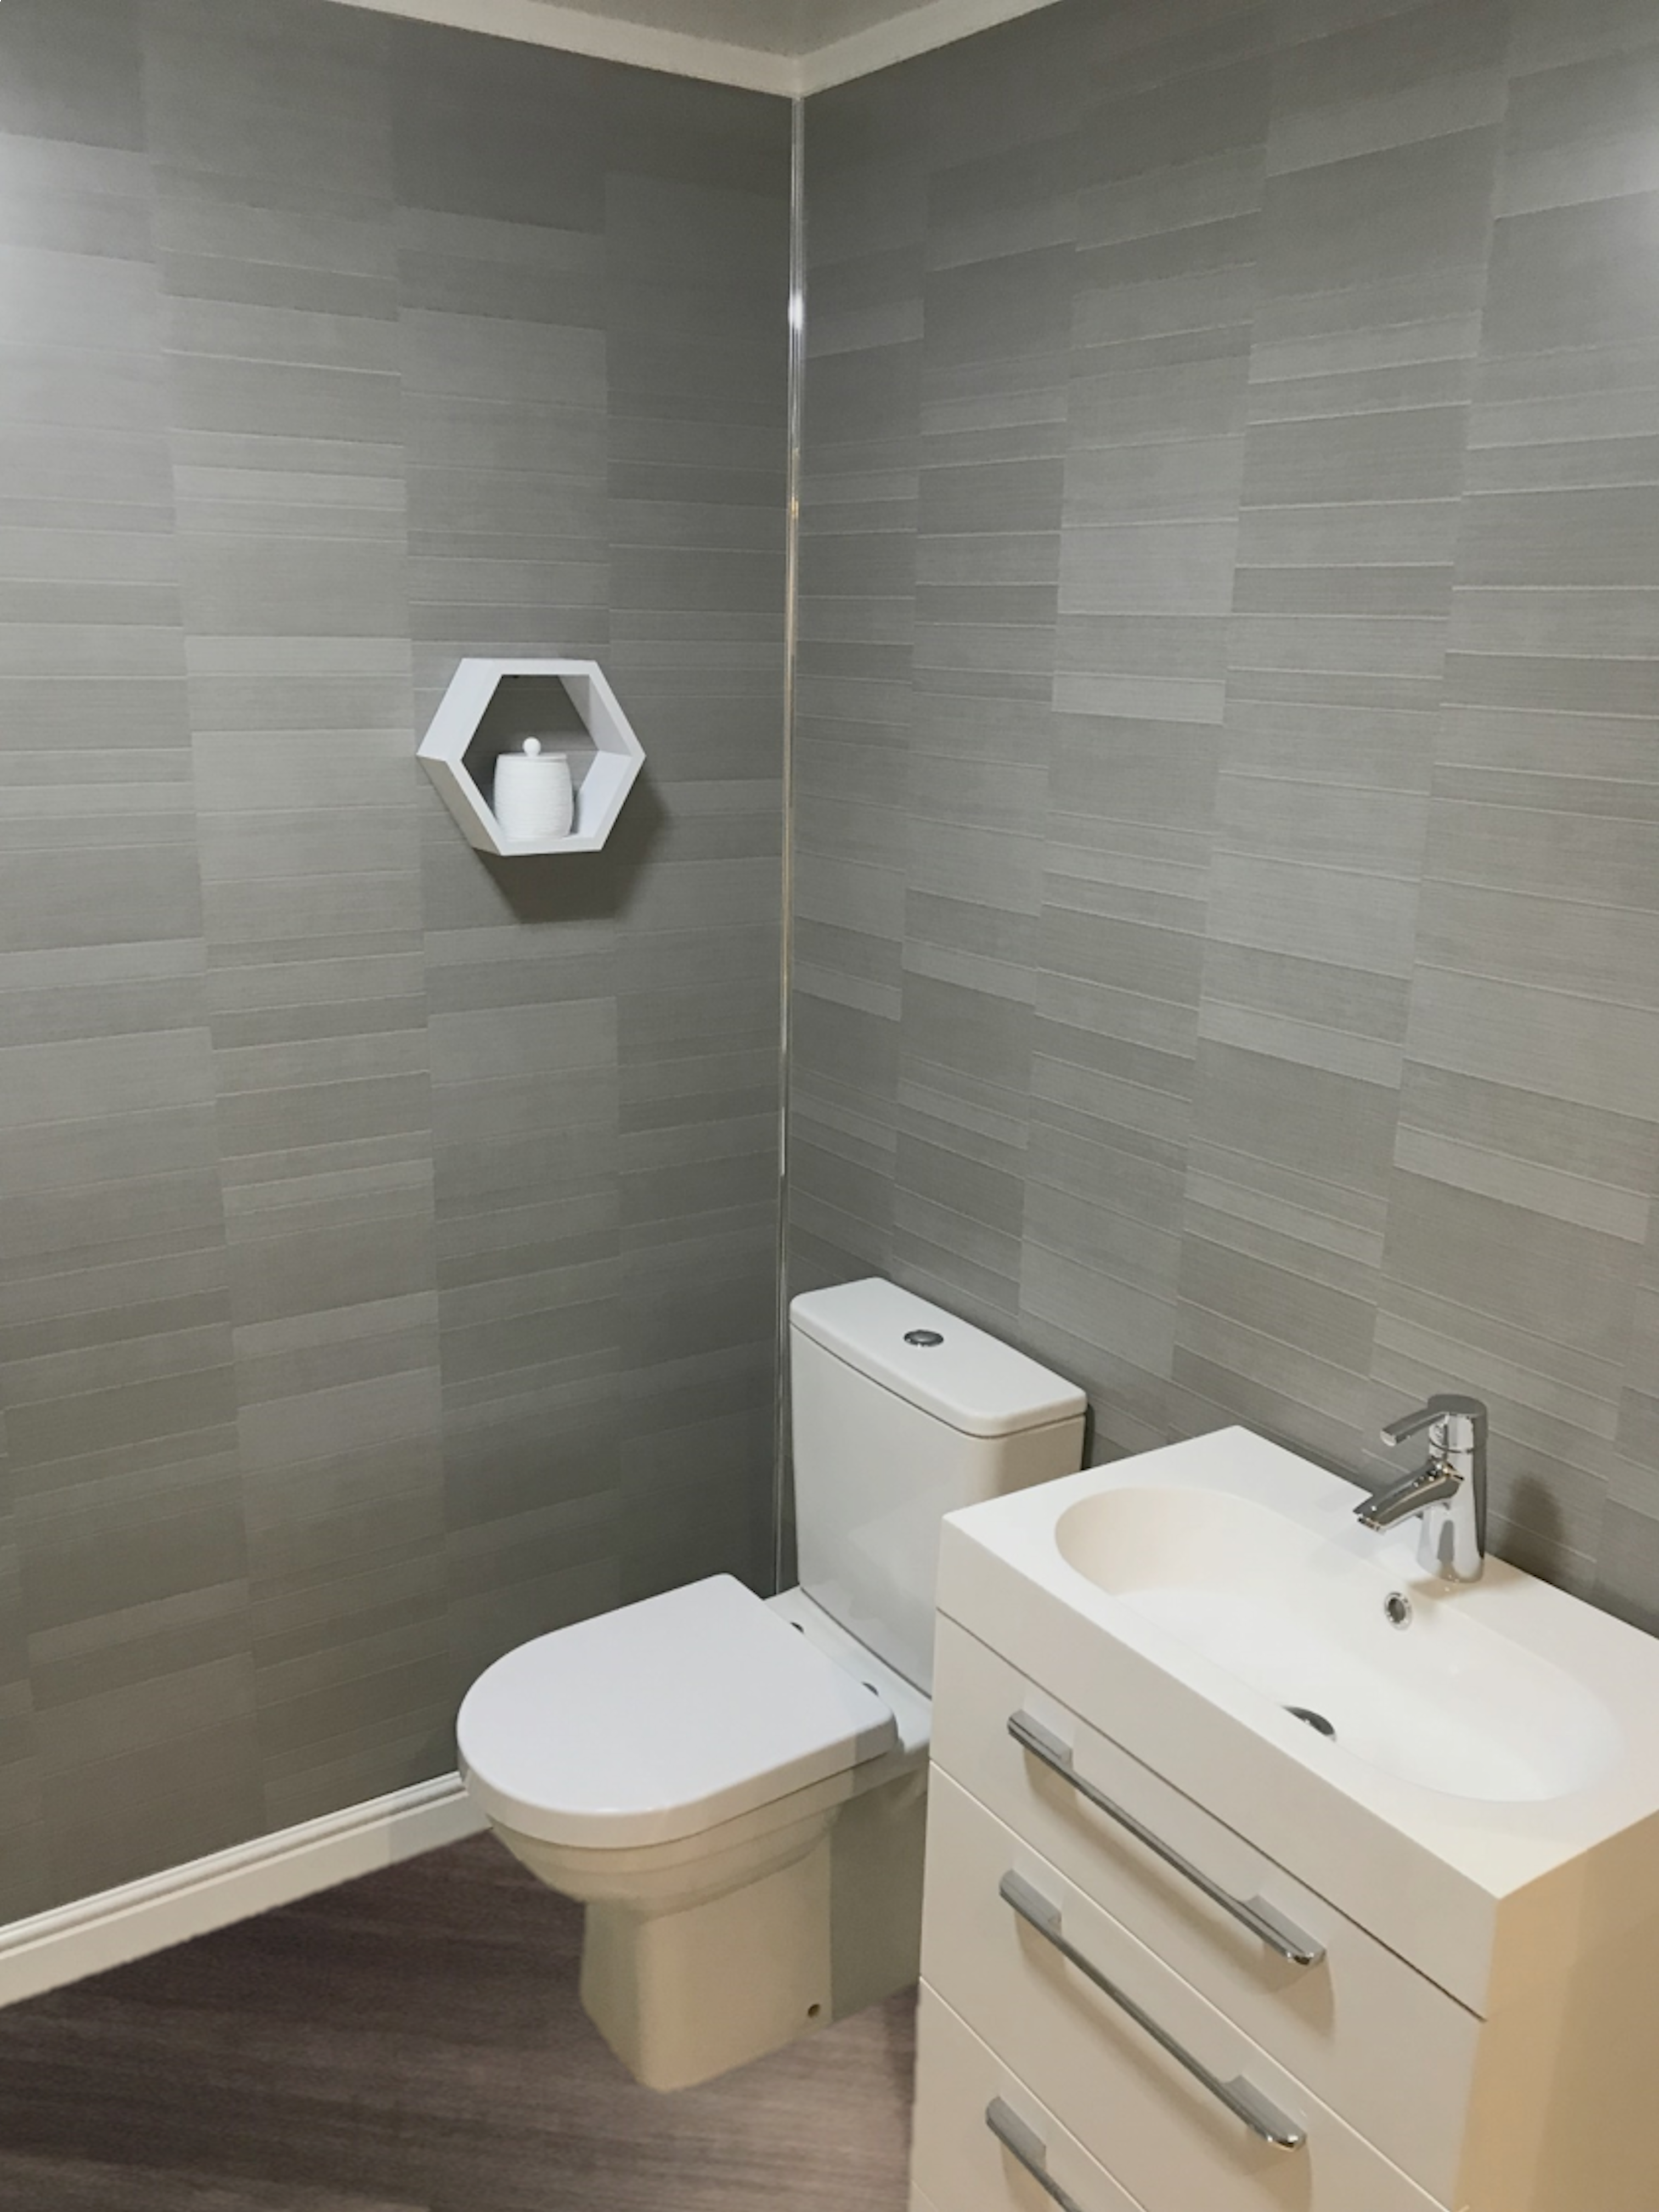 Graphite Grey Modern Tile Effect Wall Panel Bathroom Wall Coverings Bathroom Wall Panels Bathroom Wall Cladding